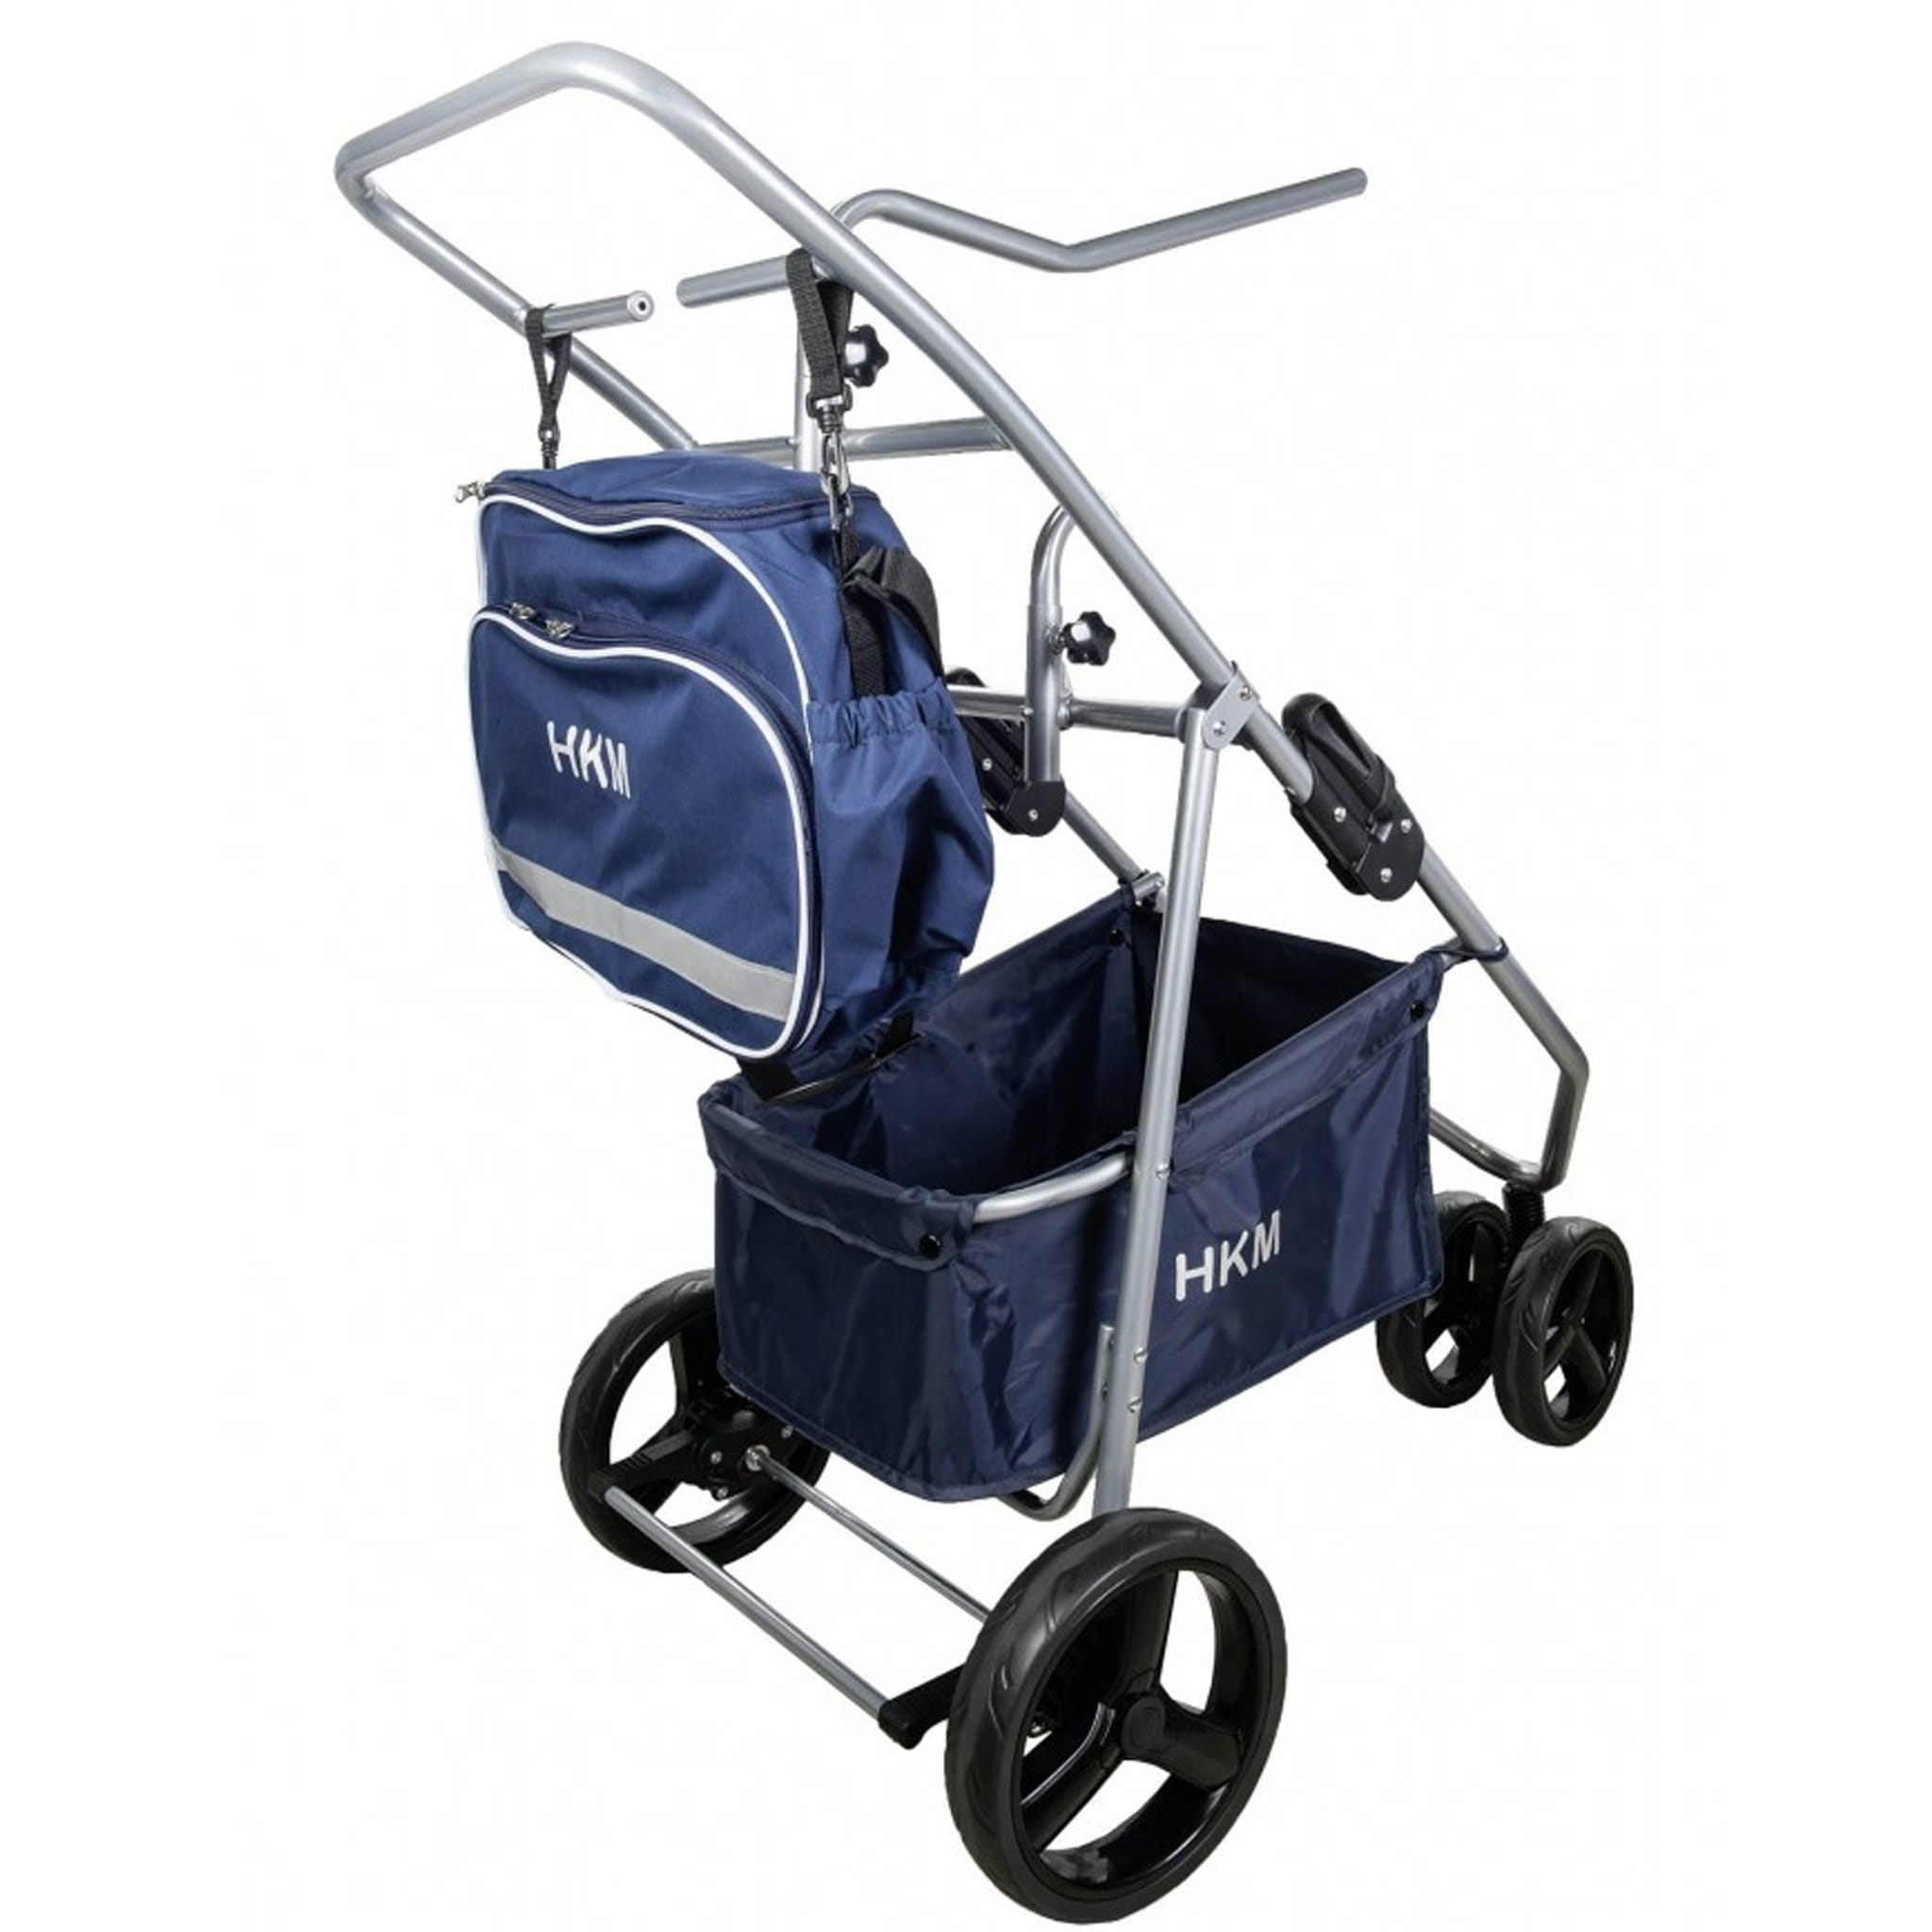 HKM Foldable Tack Trolley 8797